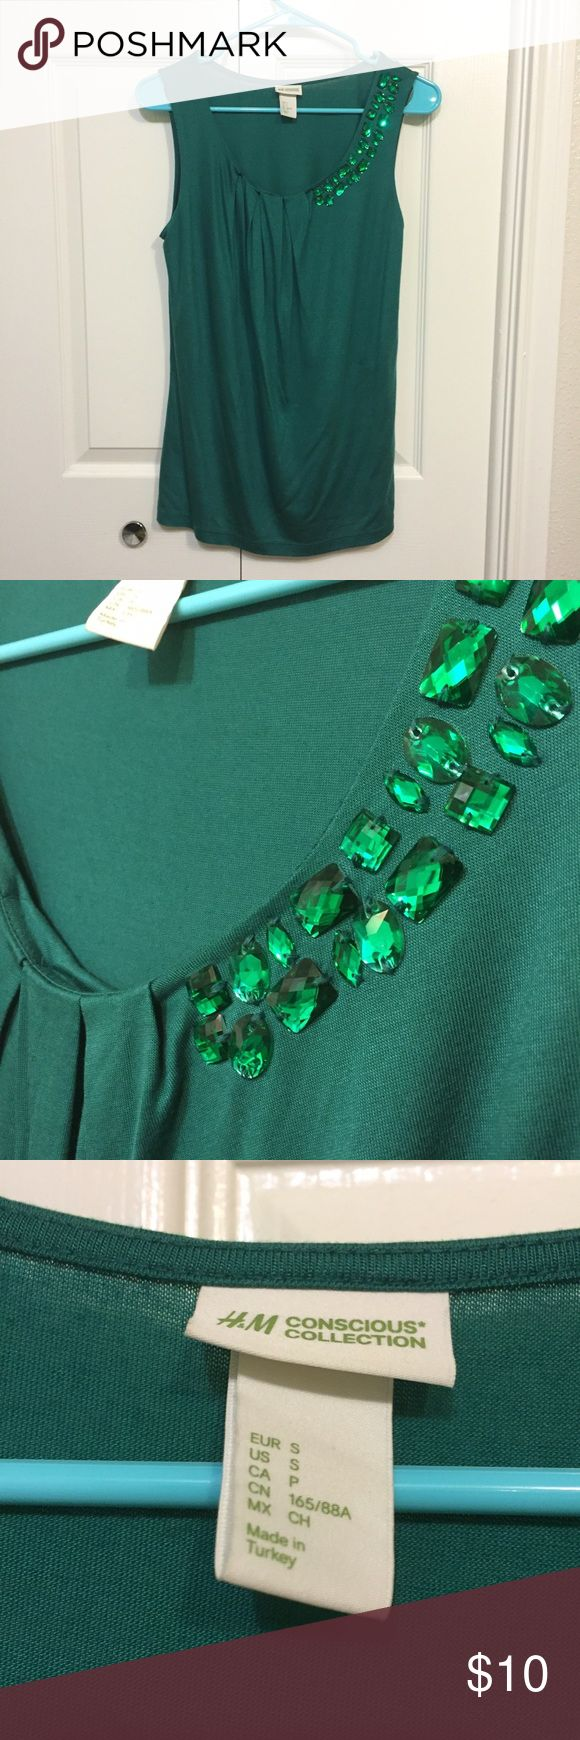 H&M Emerald Green Jewel Drape Top H&M Conscious Collection bold emerald green  top with a subtle drape is perfect for work as a shell under a blazer or cardigan. No need for a necklace as the jewels sparkle just enough for a effortless glam style suitable for the office. Wear with jeans for everyday casual-glam look too! H&M Tops Tank Tops